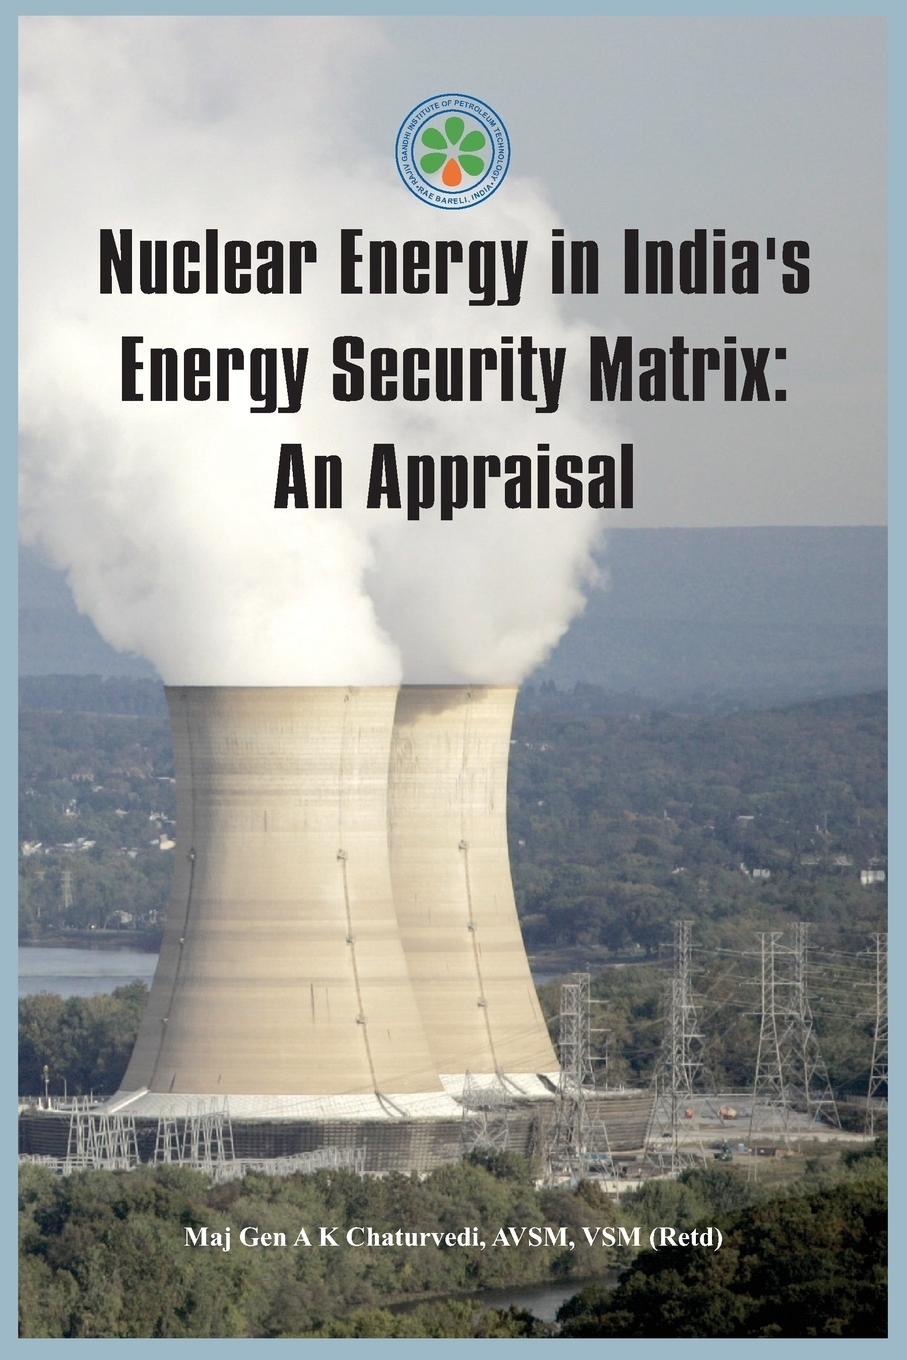 Ajay Chaturvedi. Nuclear Energy in India's Energy Security Matrix. An Appraisal